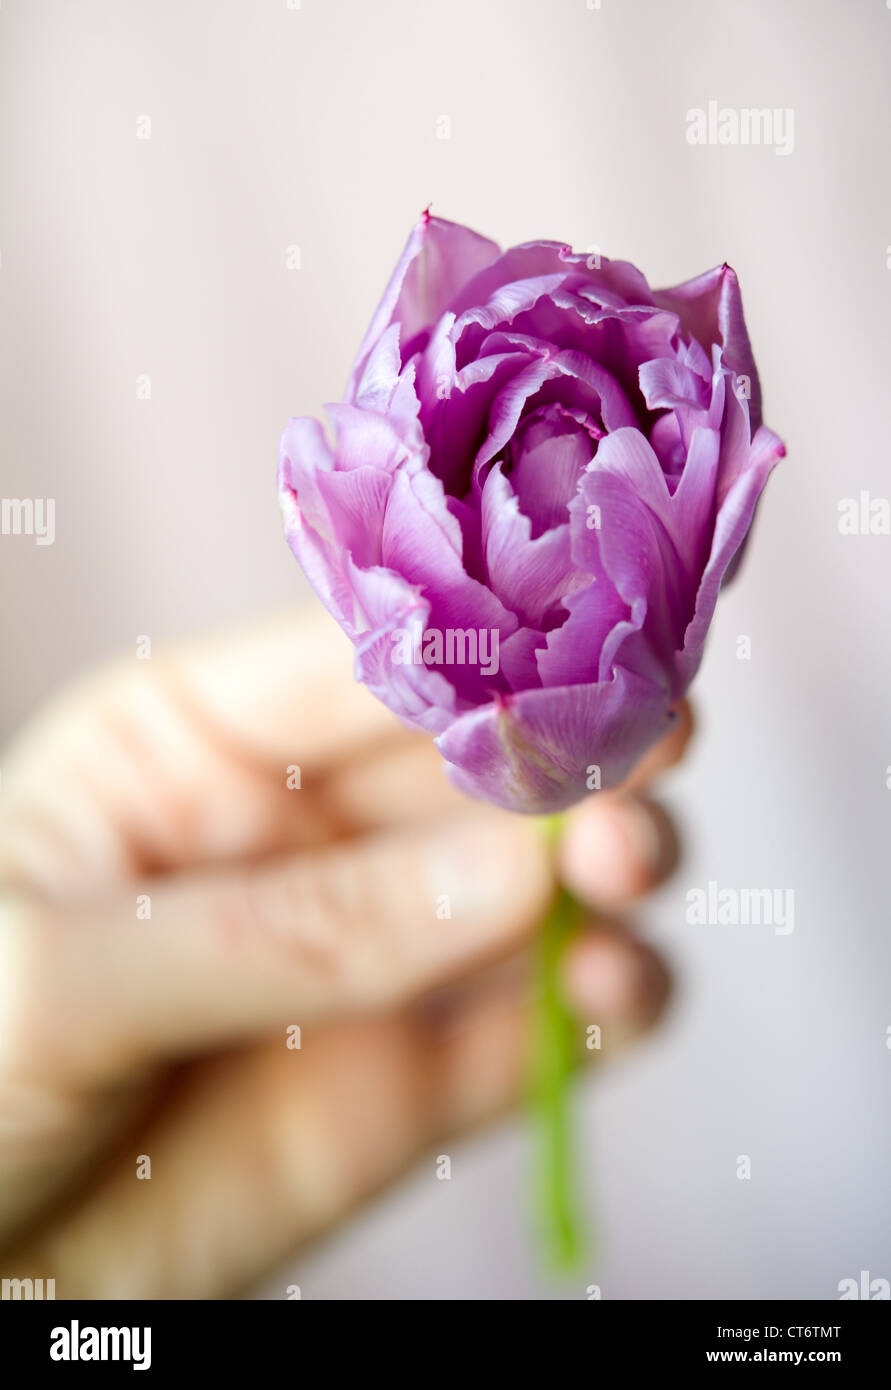 Women's hand holding small purple tulip against the light blurring background. Shallow DOF - Stock Image